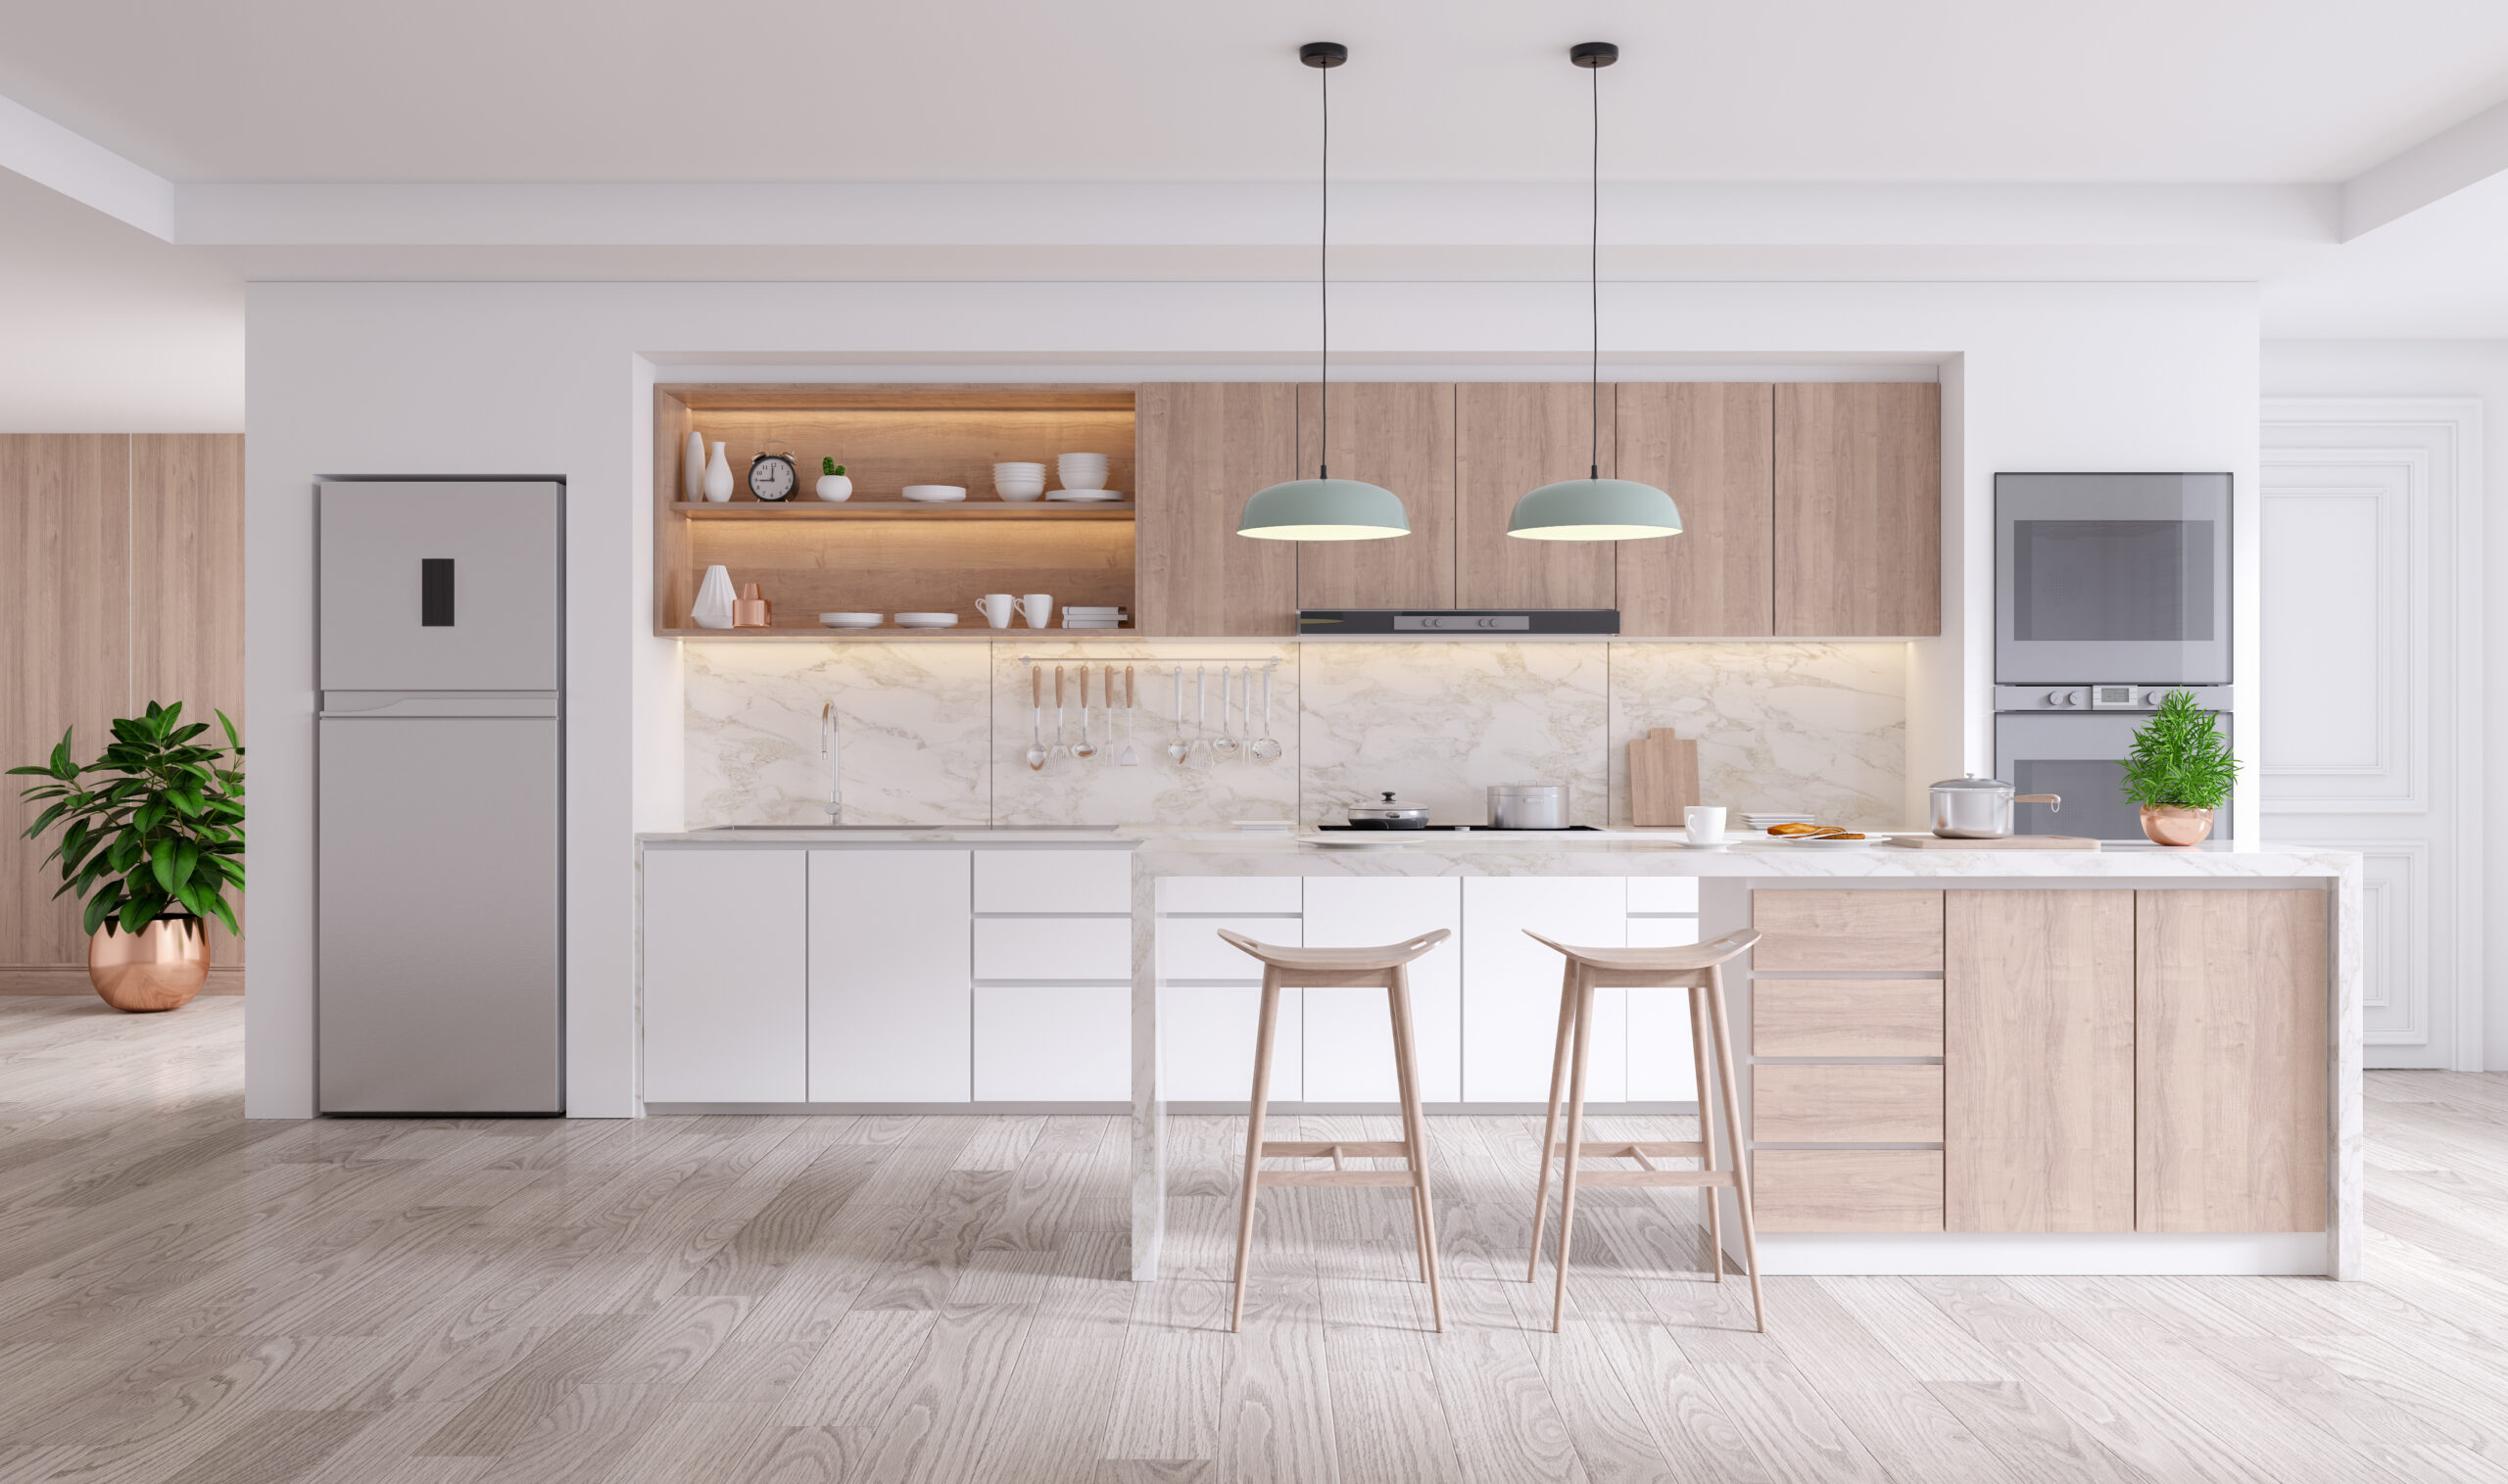 Transform Your Culinary Experience With This Kitchen Remodeling Guide